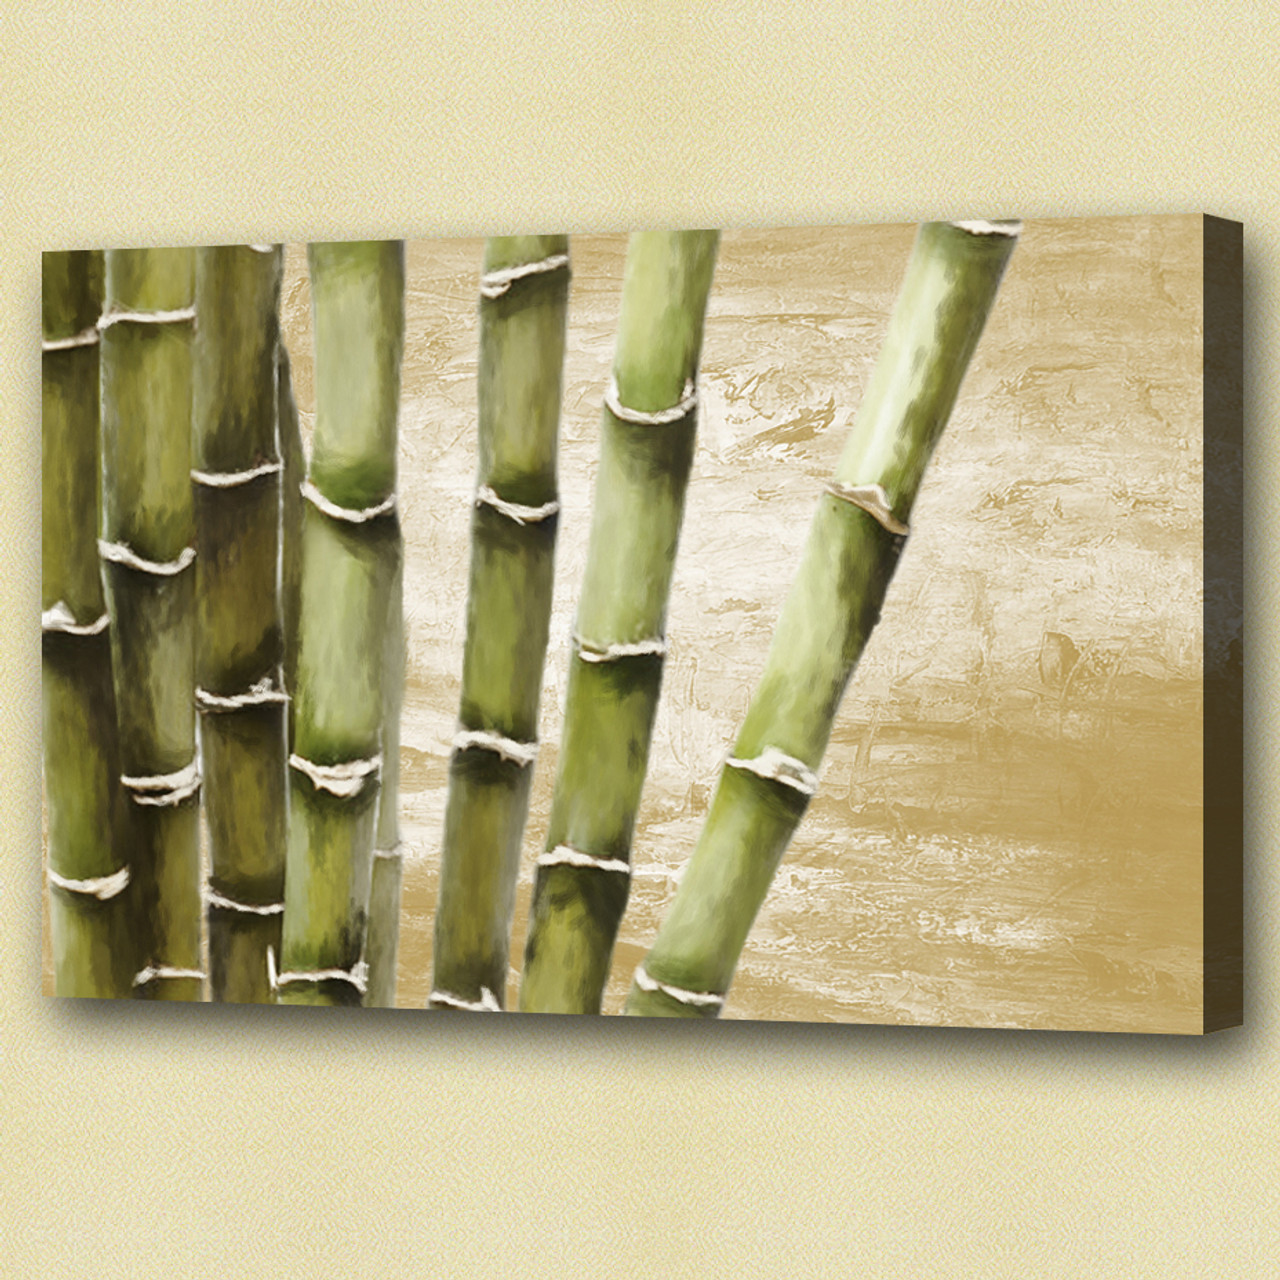 Buy Bamboo Art 04 by Community Artists Group@ Rs. 4890. Code ...